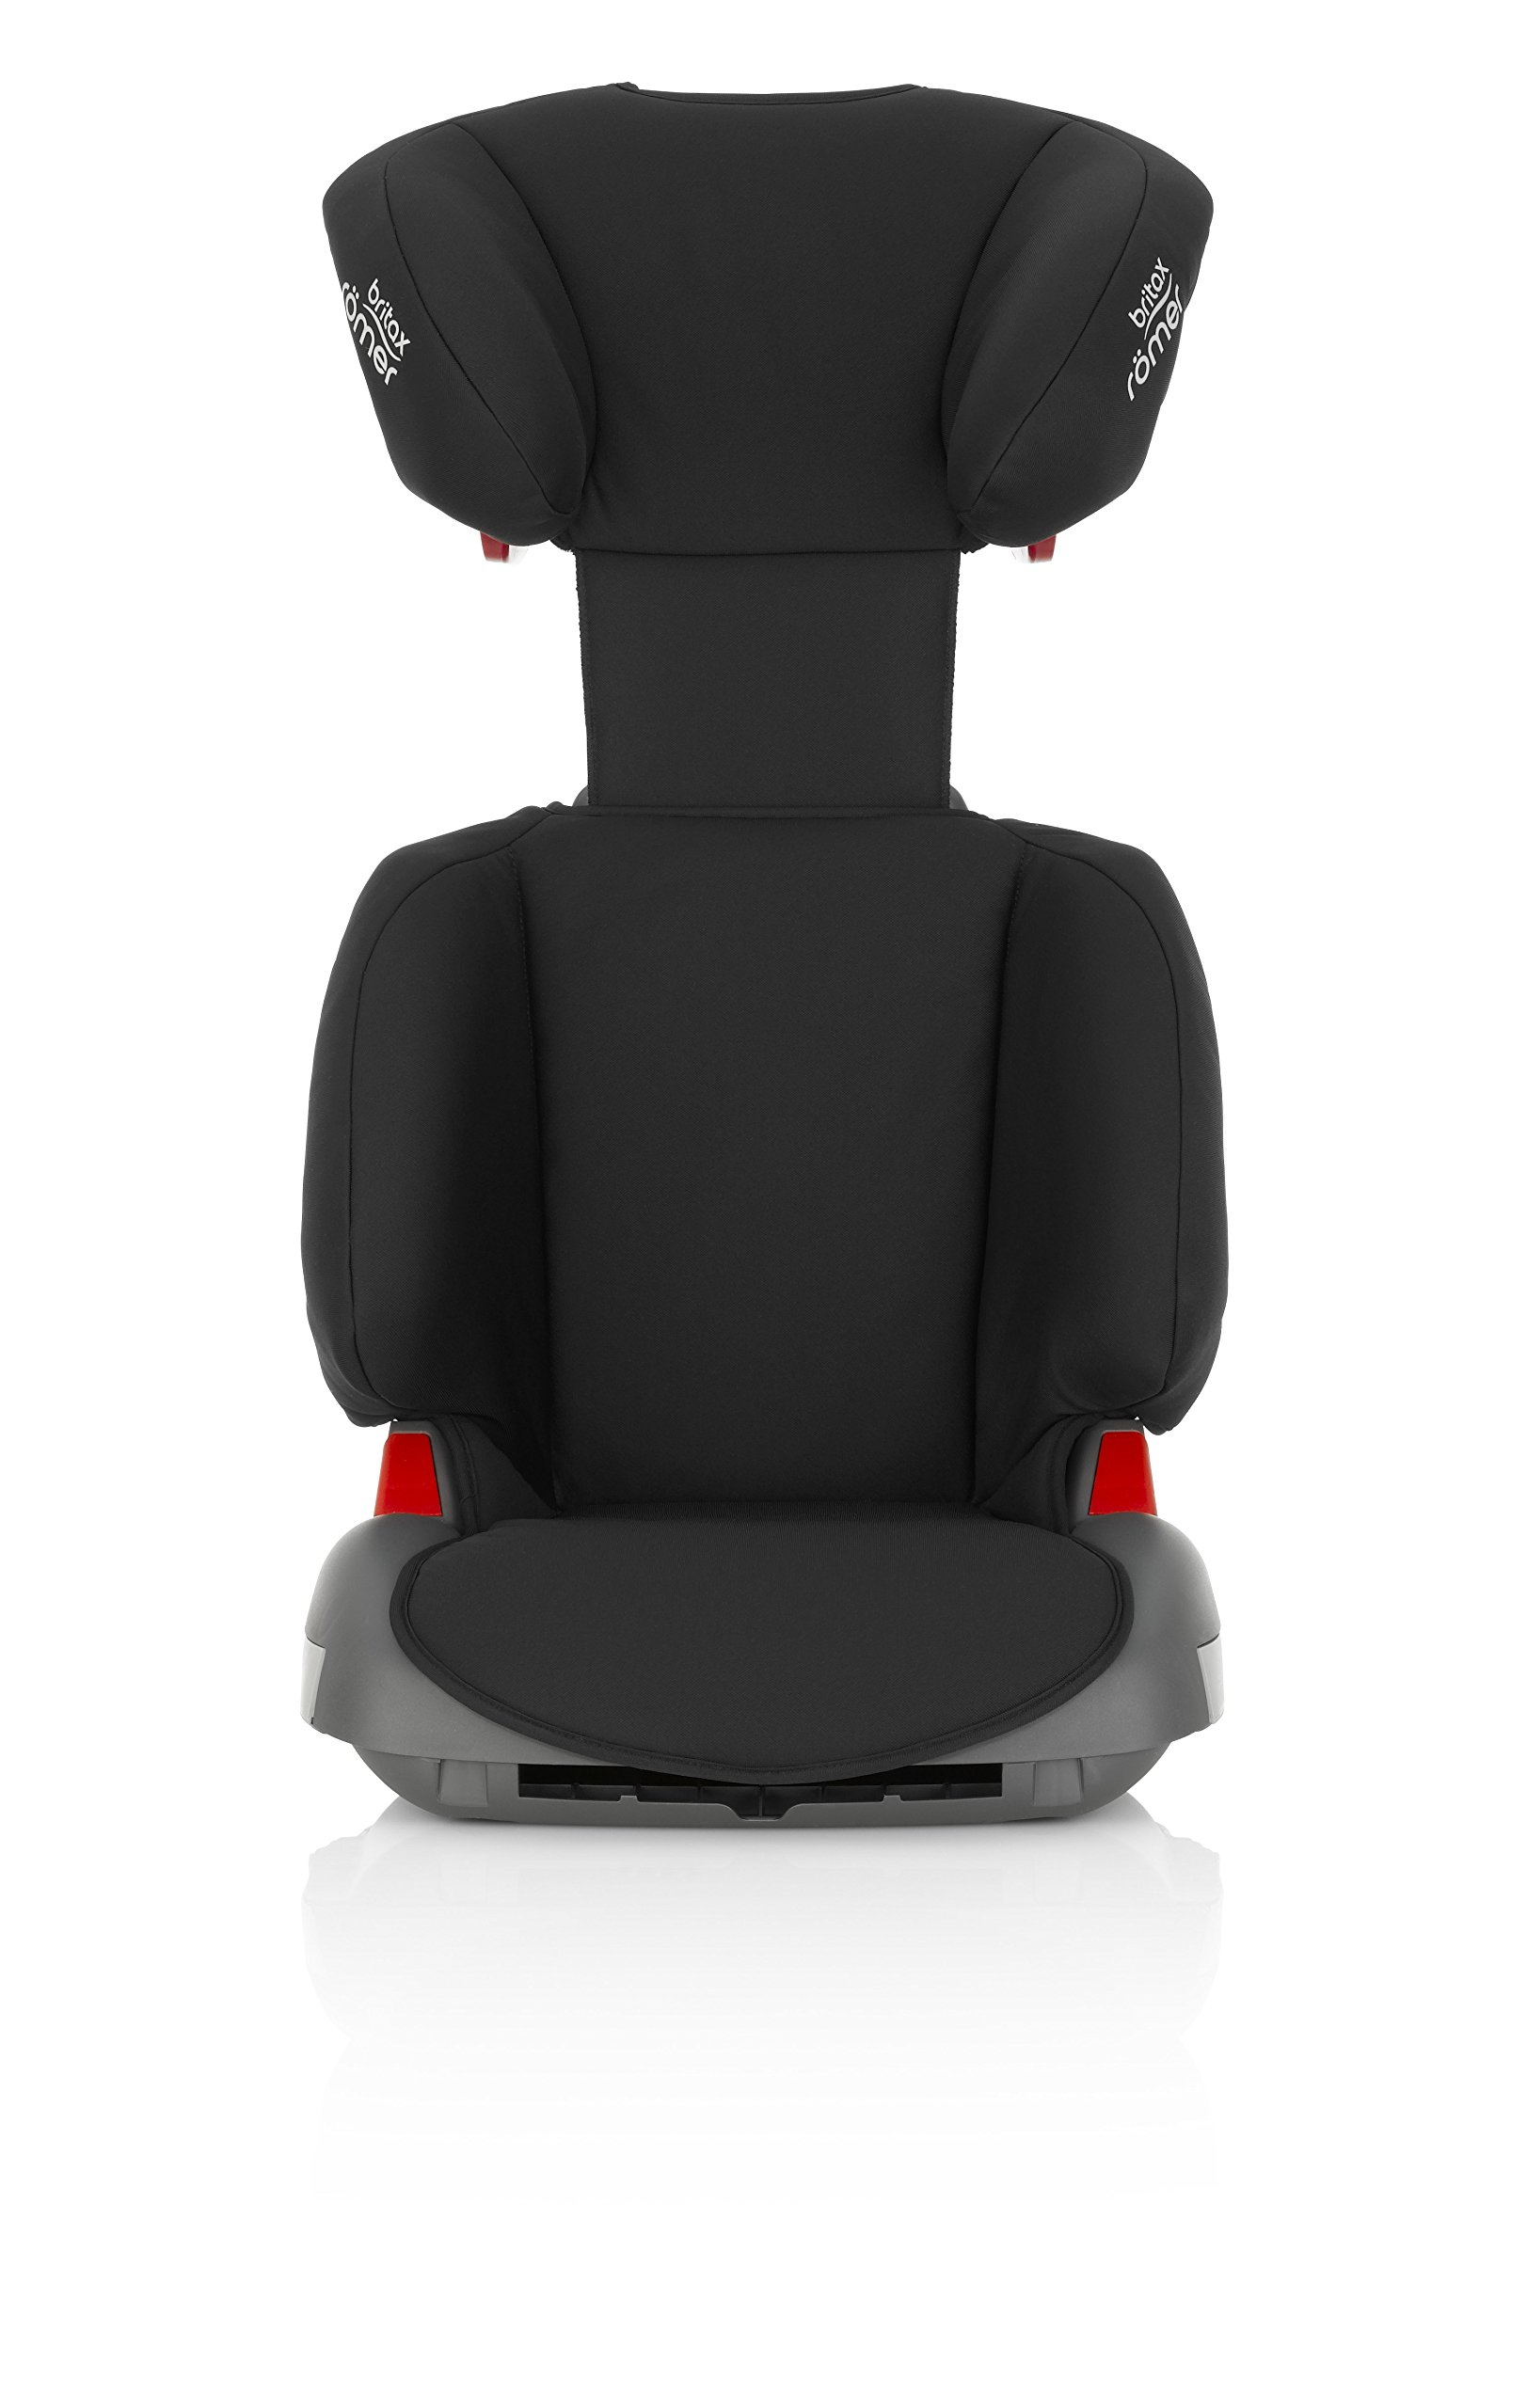 Britax Römer ADVENTURE Group 2-3 (15-36kg) Car Seat - Cosmos Black Britax Römer Intuitively positioned seat belt guides for straightforward installation every time. Machine washable seat cover that can easily be removed, so you can clean up quick and get on your way Reassurance of highback booster safety with side impact protection Lightweight, easily transferable shell 4